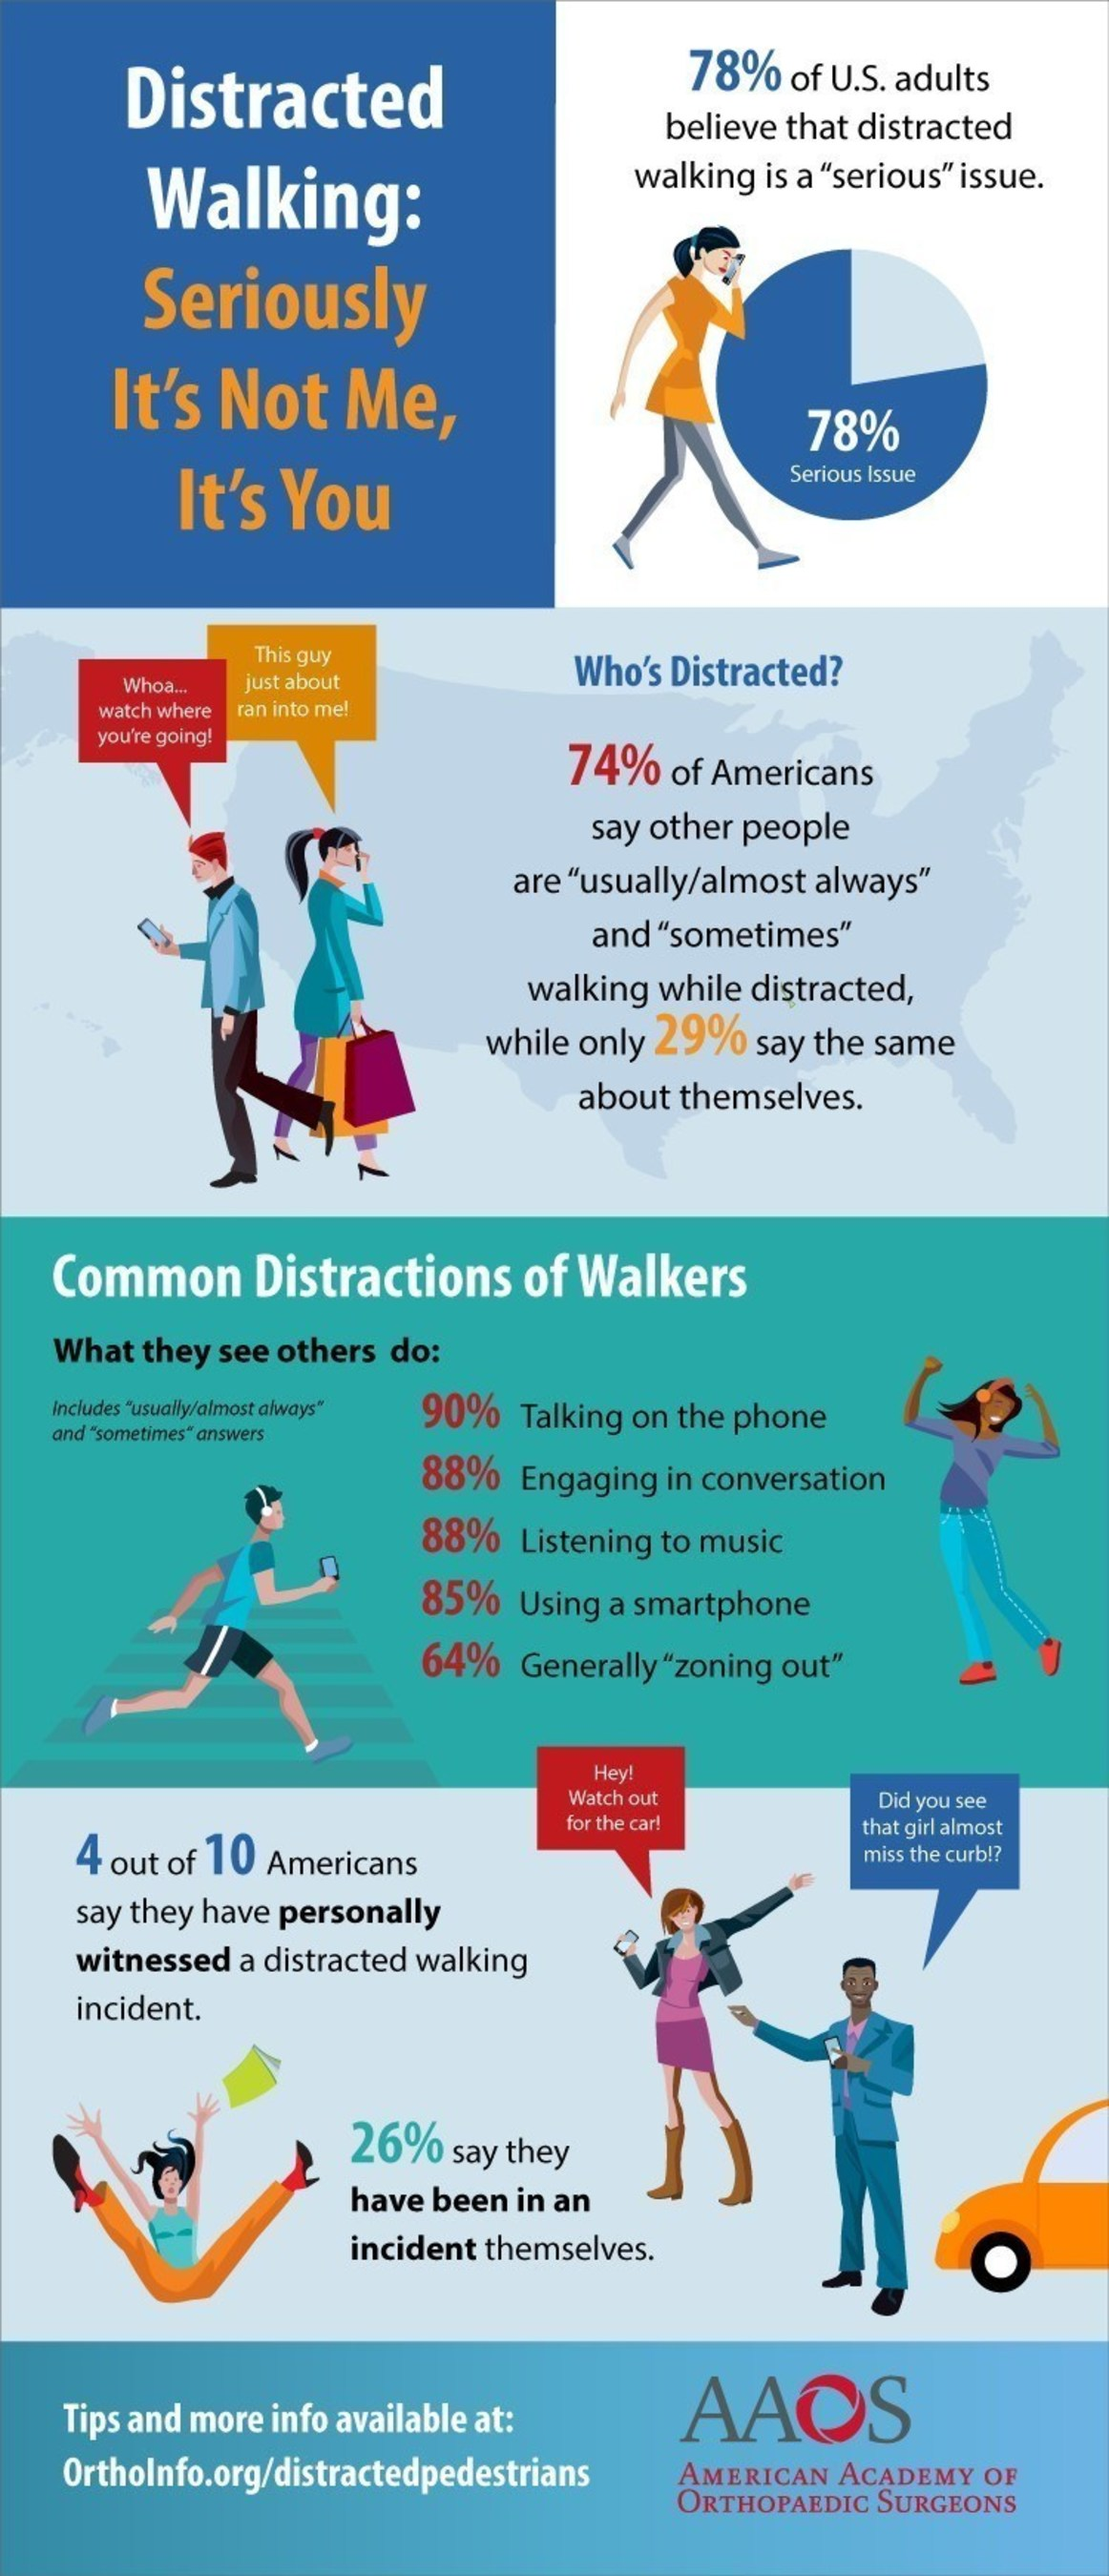 """A new study on distracted walking released today by the American Academy of Orthopaedic Surgeons (AAOS) finds that more than three quarters (78 percent) of U.S. adults believe that distracted walking is a """"serious"""" issue; however, 74 percent of Americans say """"other people"""" are usually or always walking while distracted, while only 29 percent say the same about themselves."""